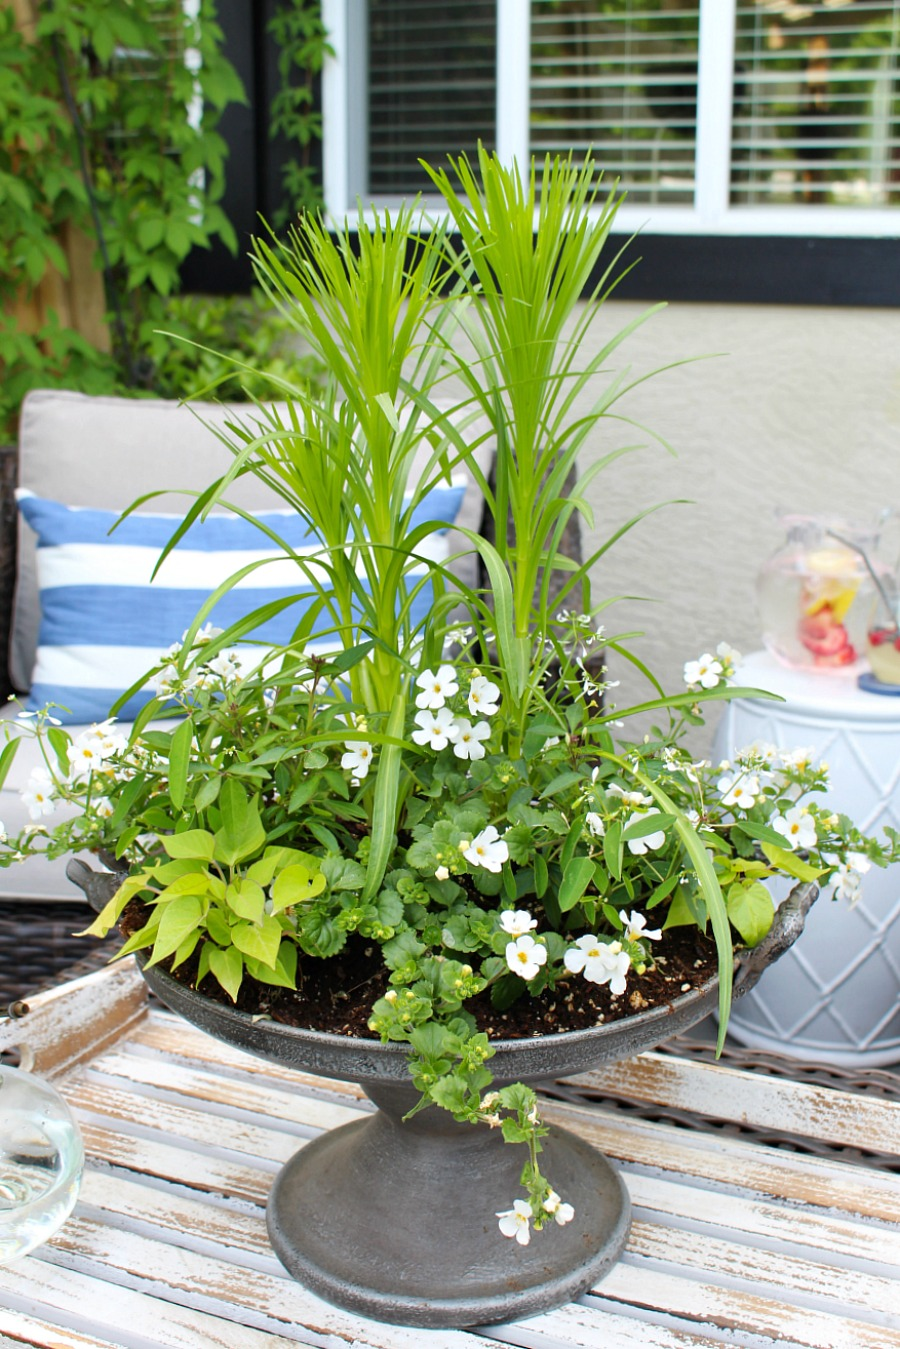 White and green summer planter on a summer patio.